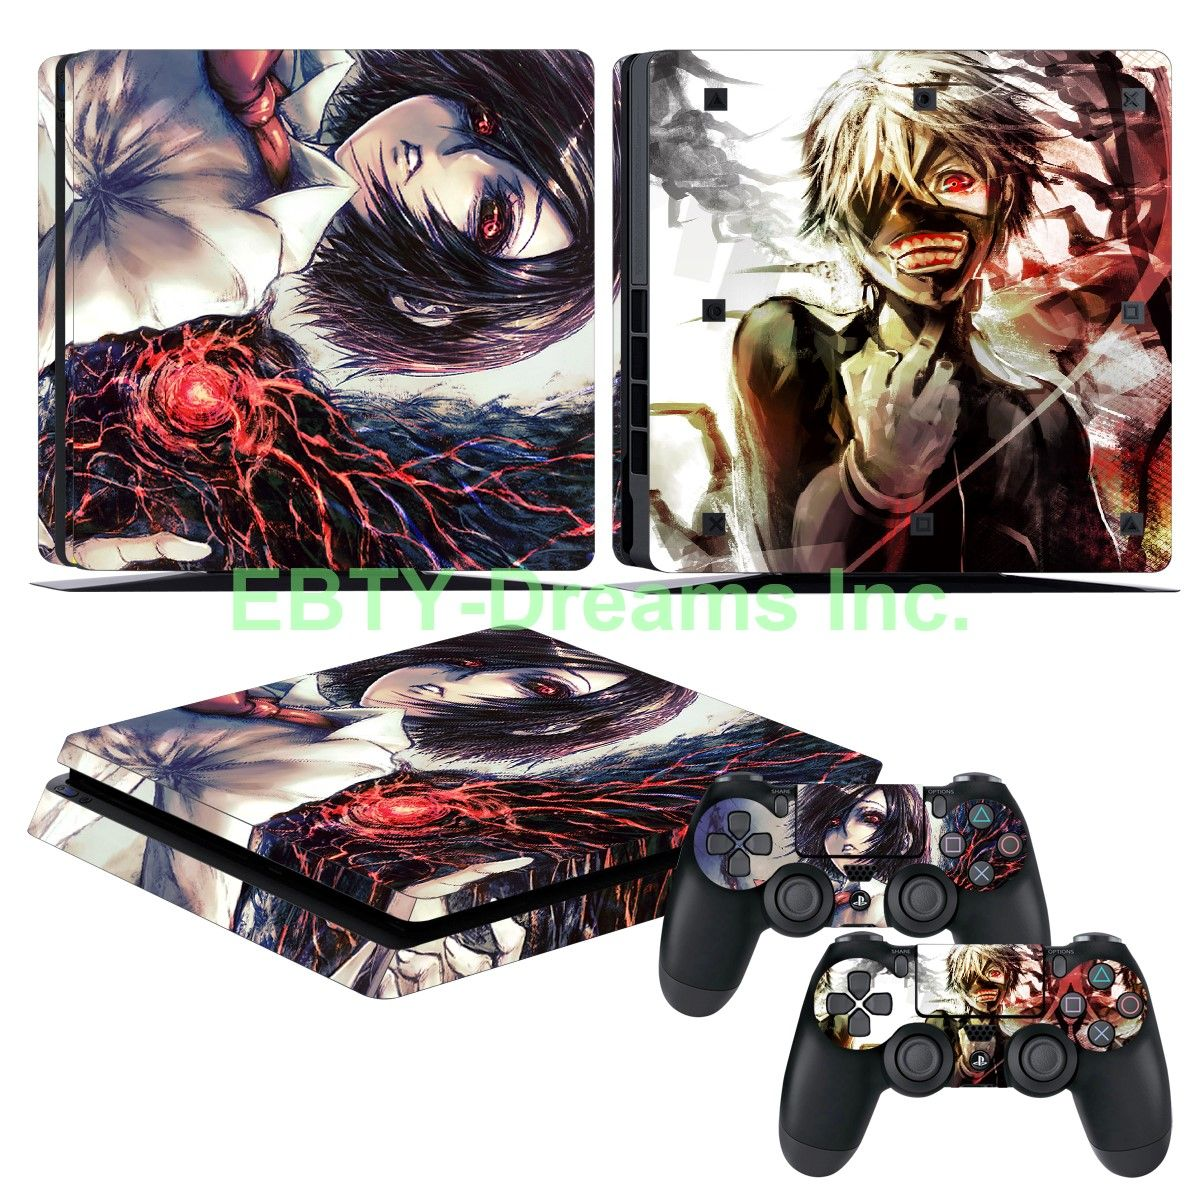 Pin on Playstation 4 Slim (PS4 Slim) Anime Video Game